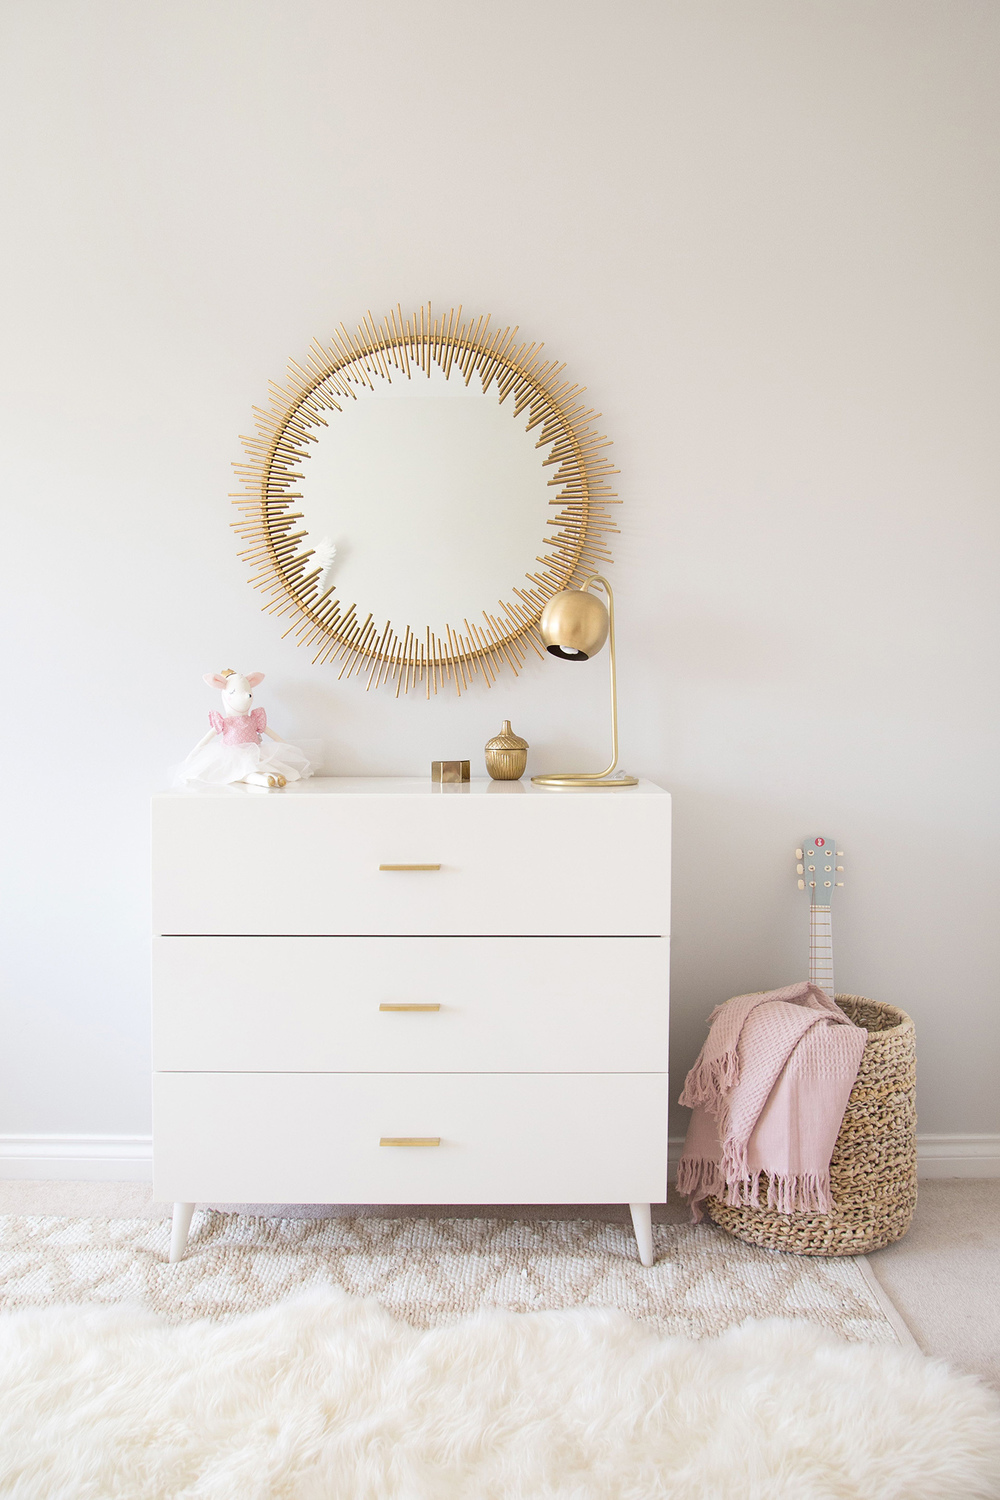 THE DEFINITIVE GUIDE TO DRESSERS FOR KIDS WINTER DAISY interiors